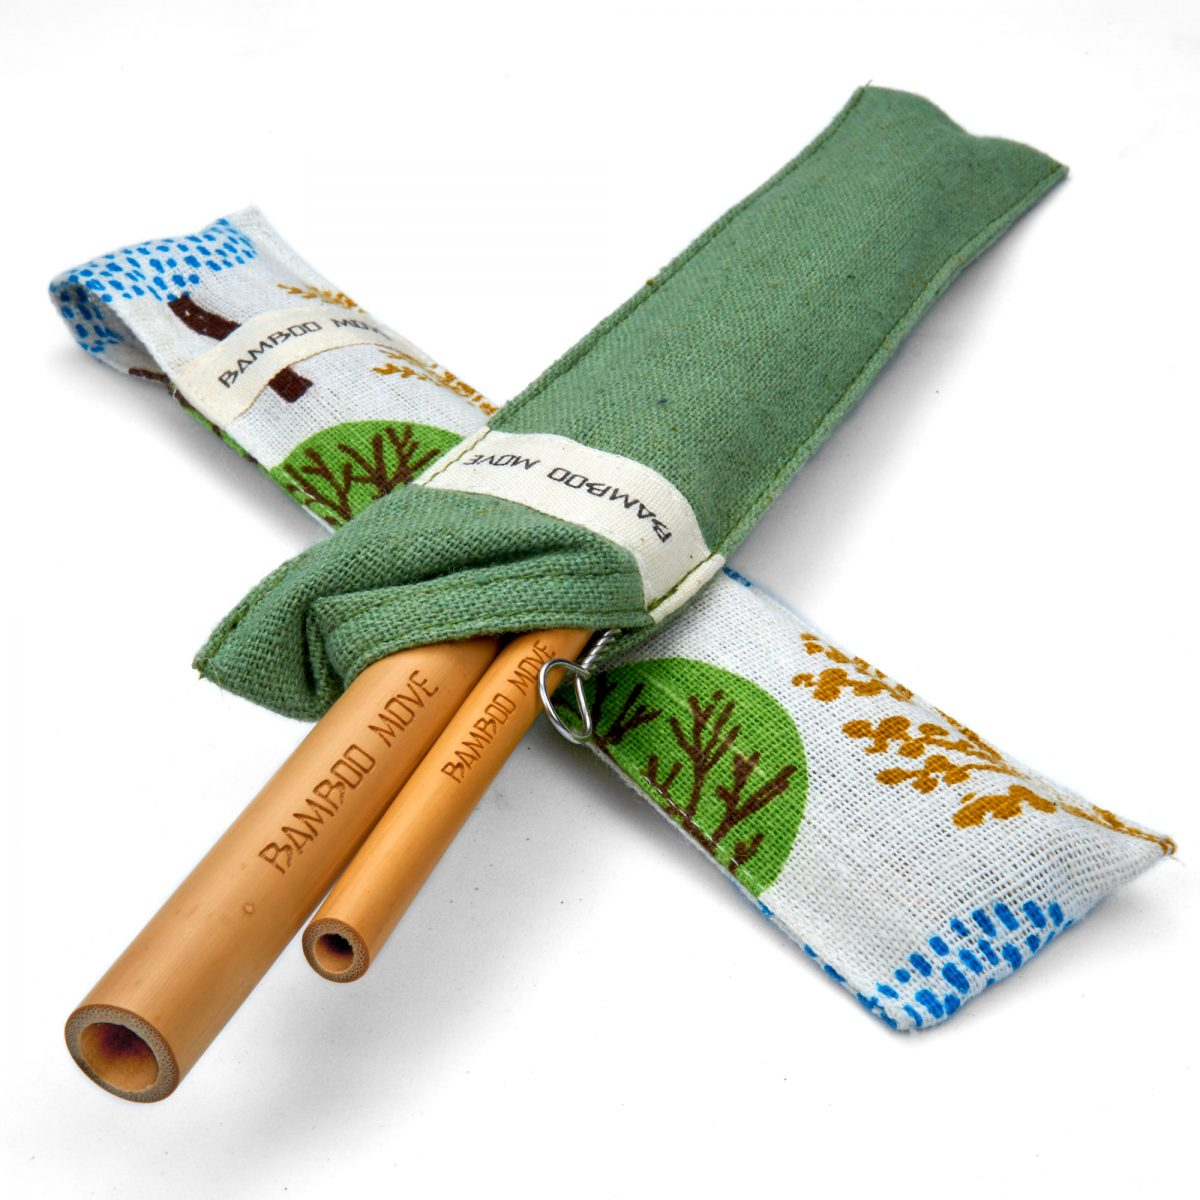 Bamboo straw travel Kit Bamboo Move by Bamboo Step.